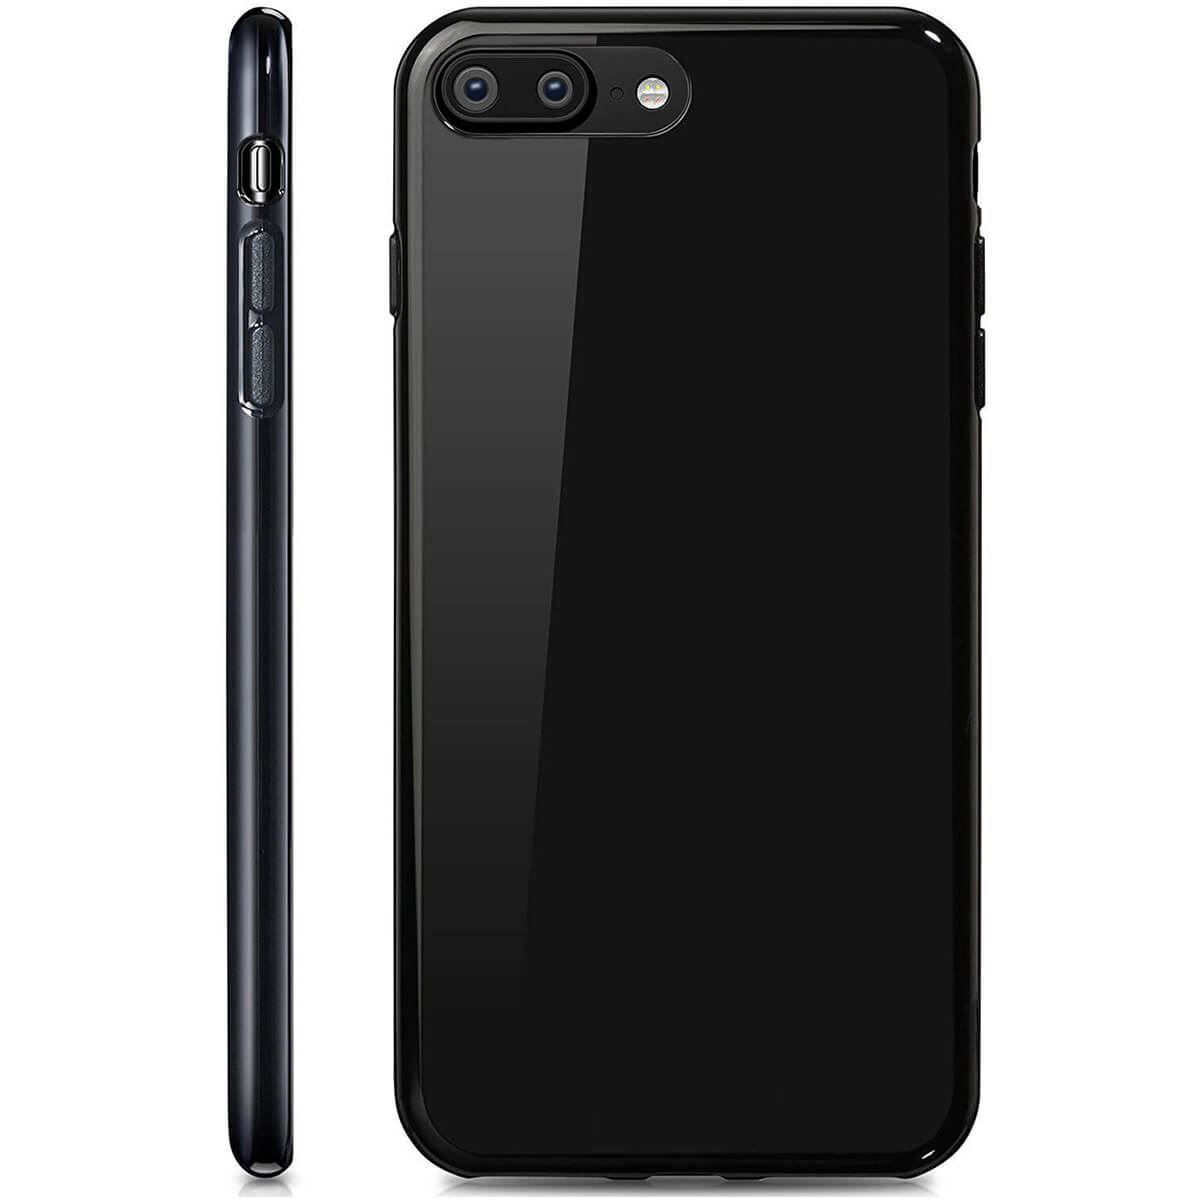 Ultra-Thin-Case-Apple-iPhone-10-X-8-7-6s-5s-Shockproof-Jelly-TPU-Jet-Black-Cover thumbnail 4